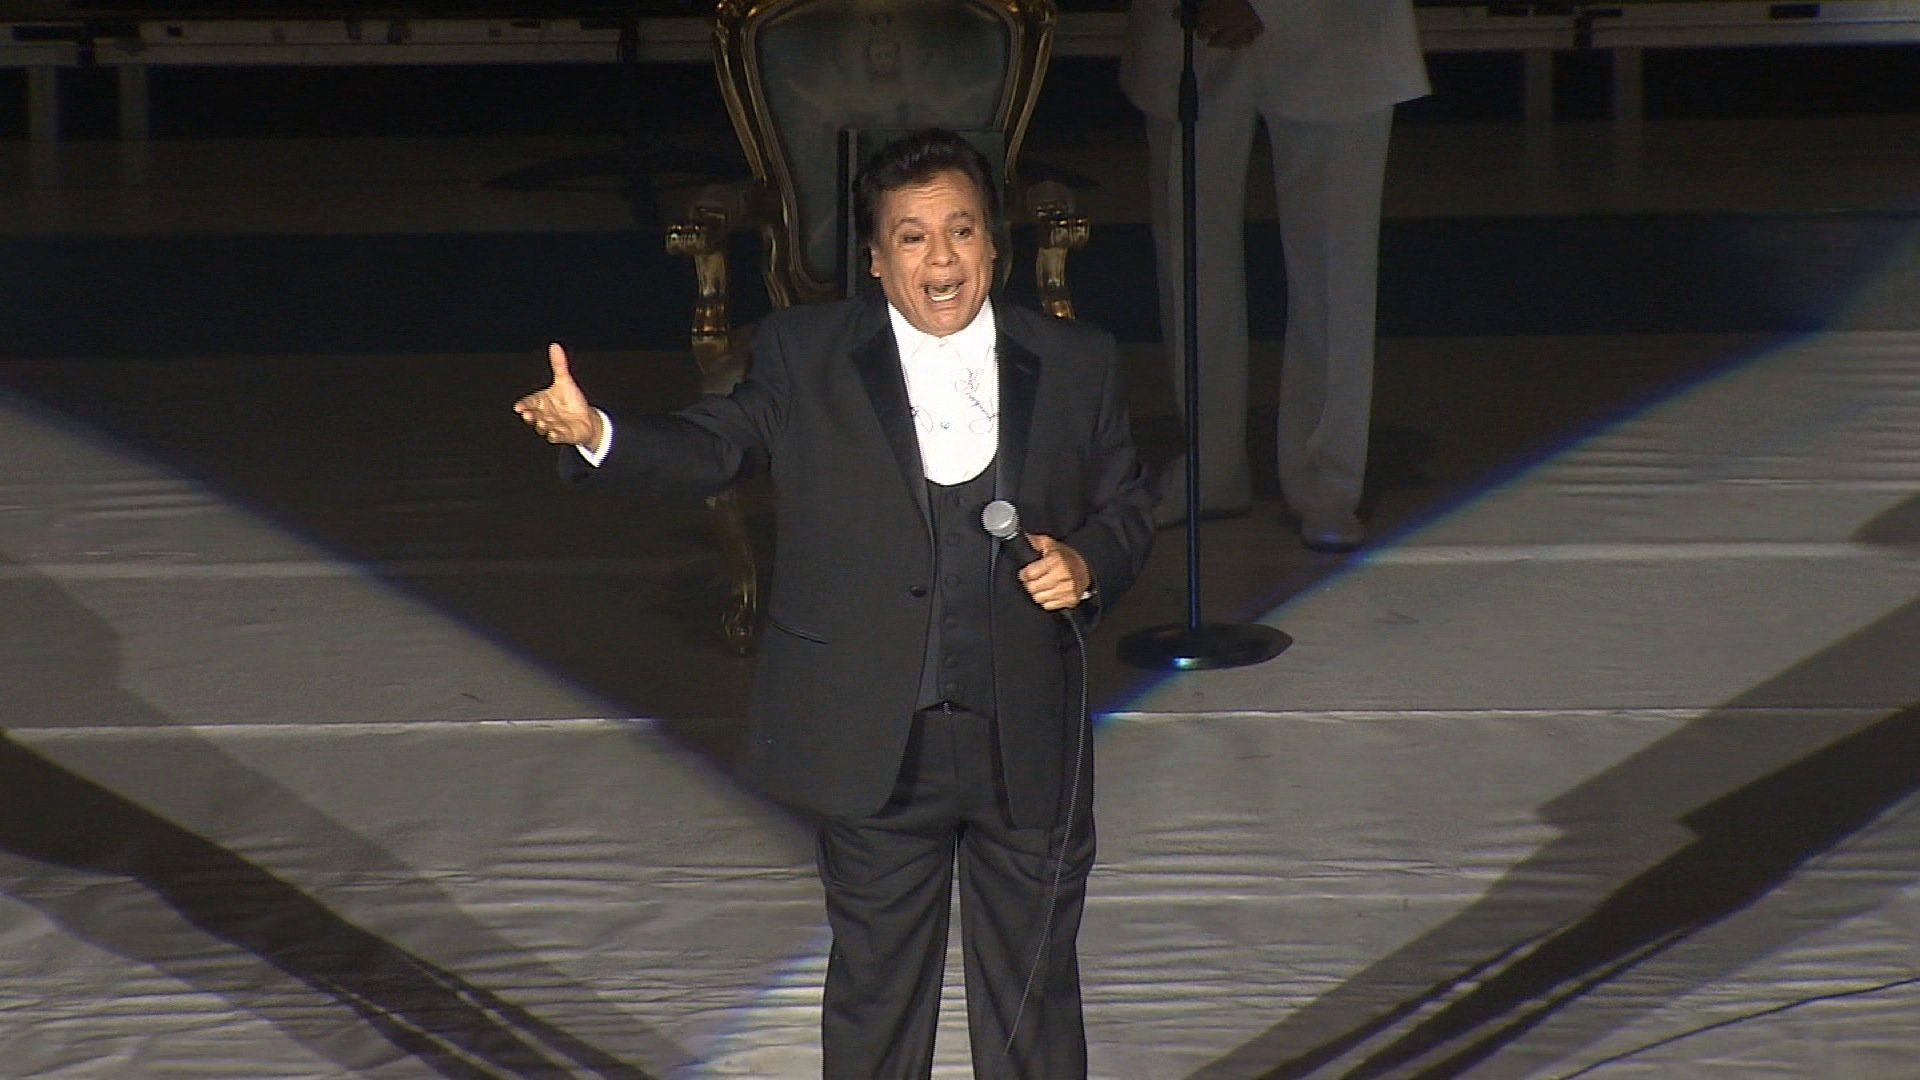 Juan Gabriel, Latin American music icon, performing at a concert in Mexico City, Mexico on May 11, 2015.